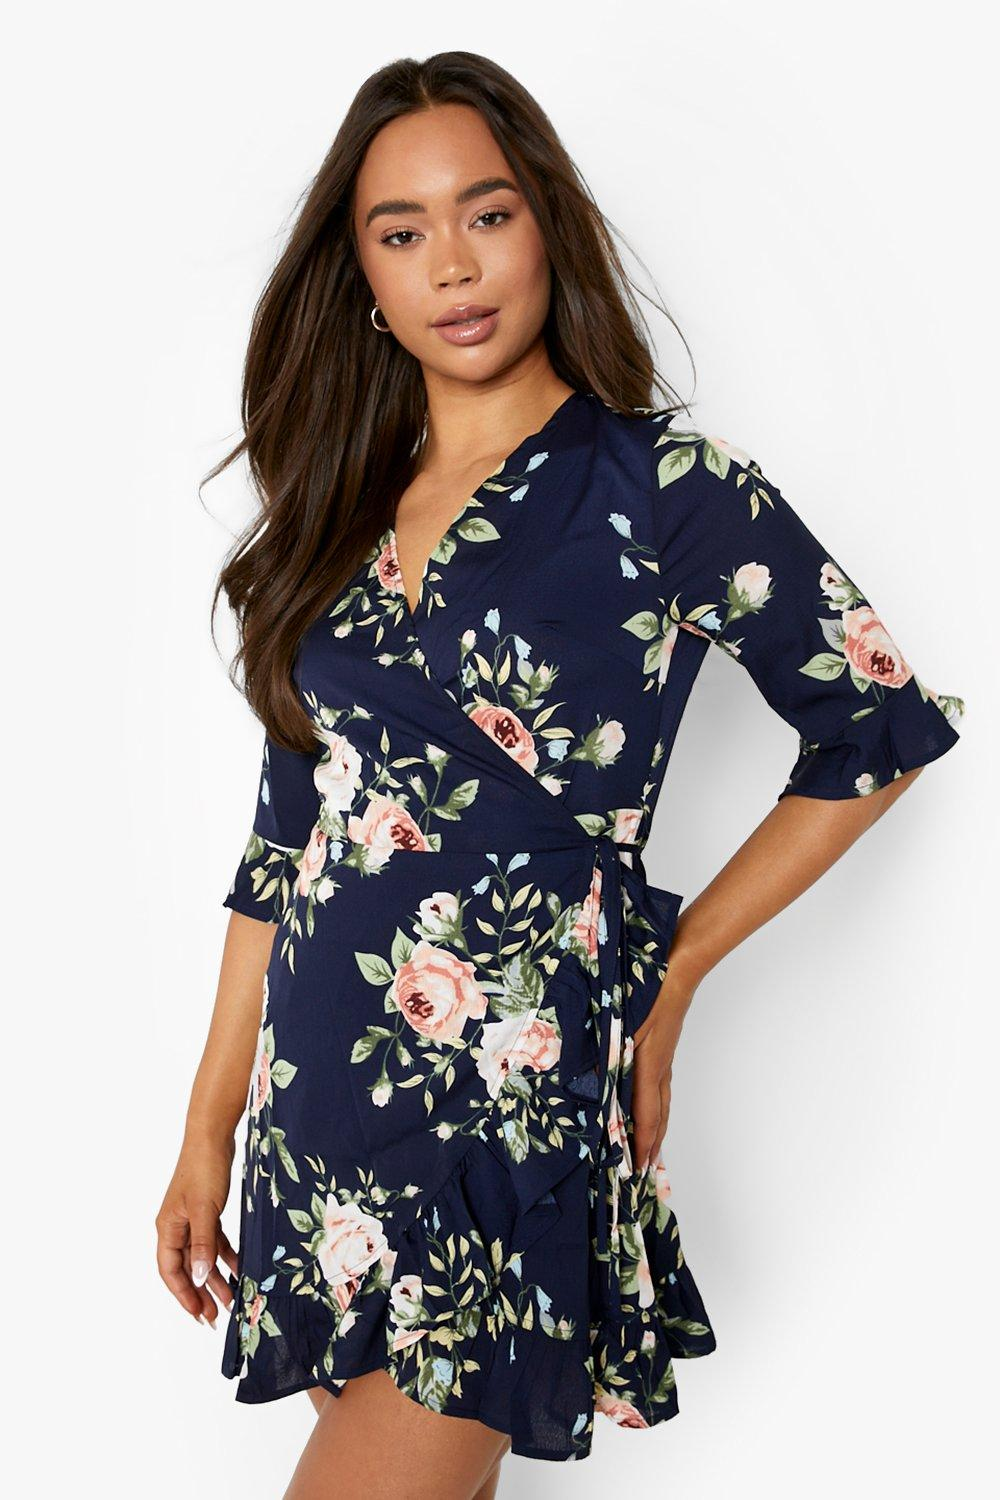 size 40 Discover strong packing Floral Frill Hem Wrap Dress | Boohoo